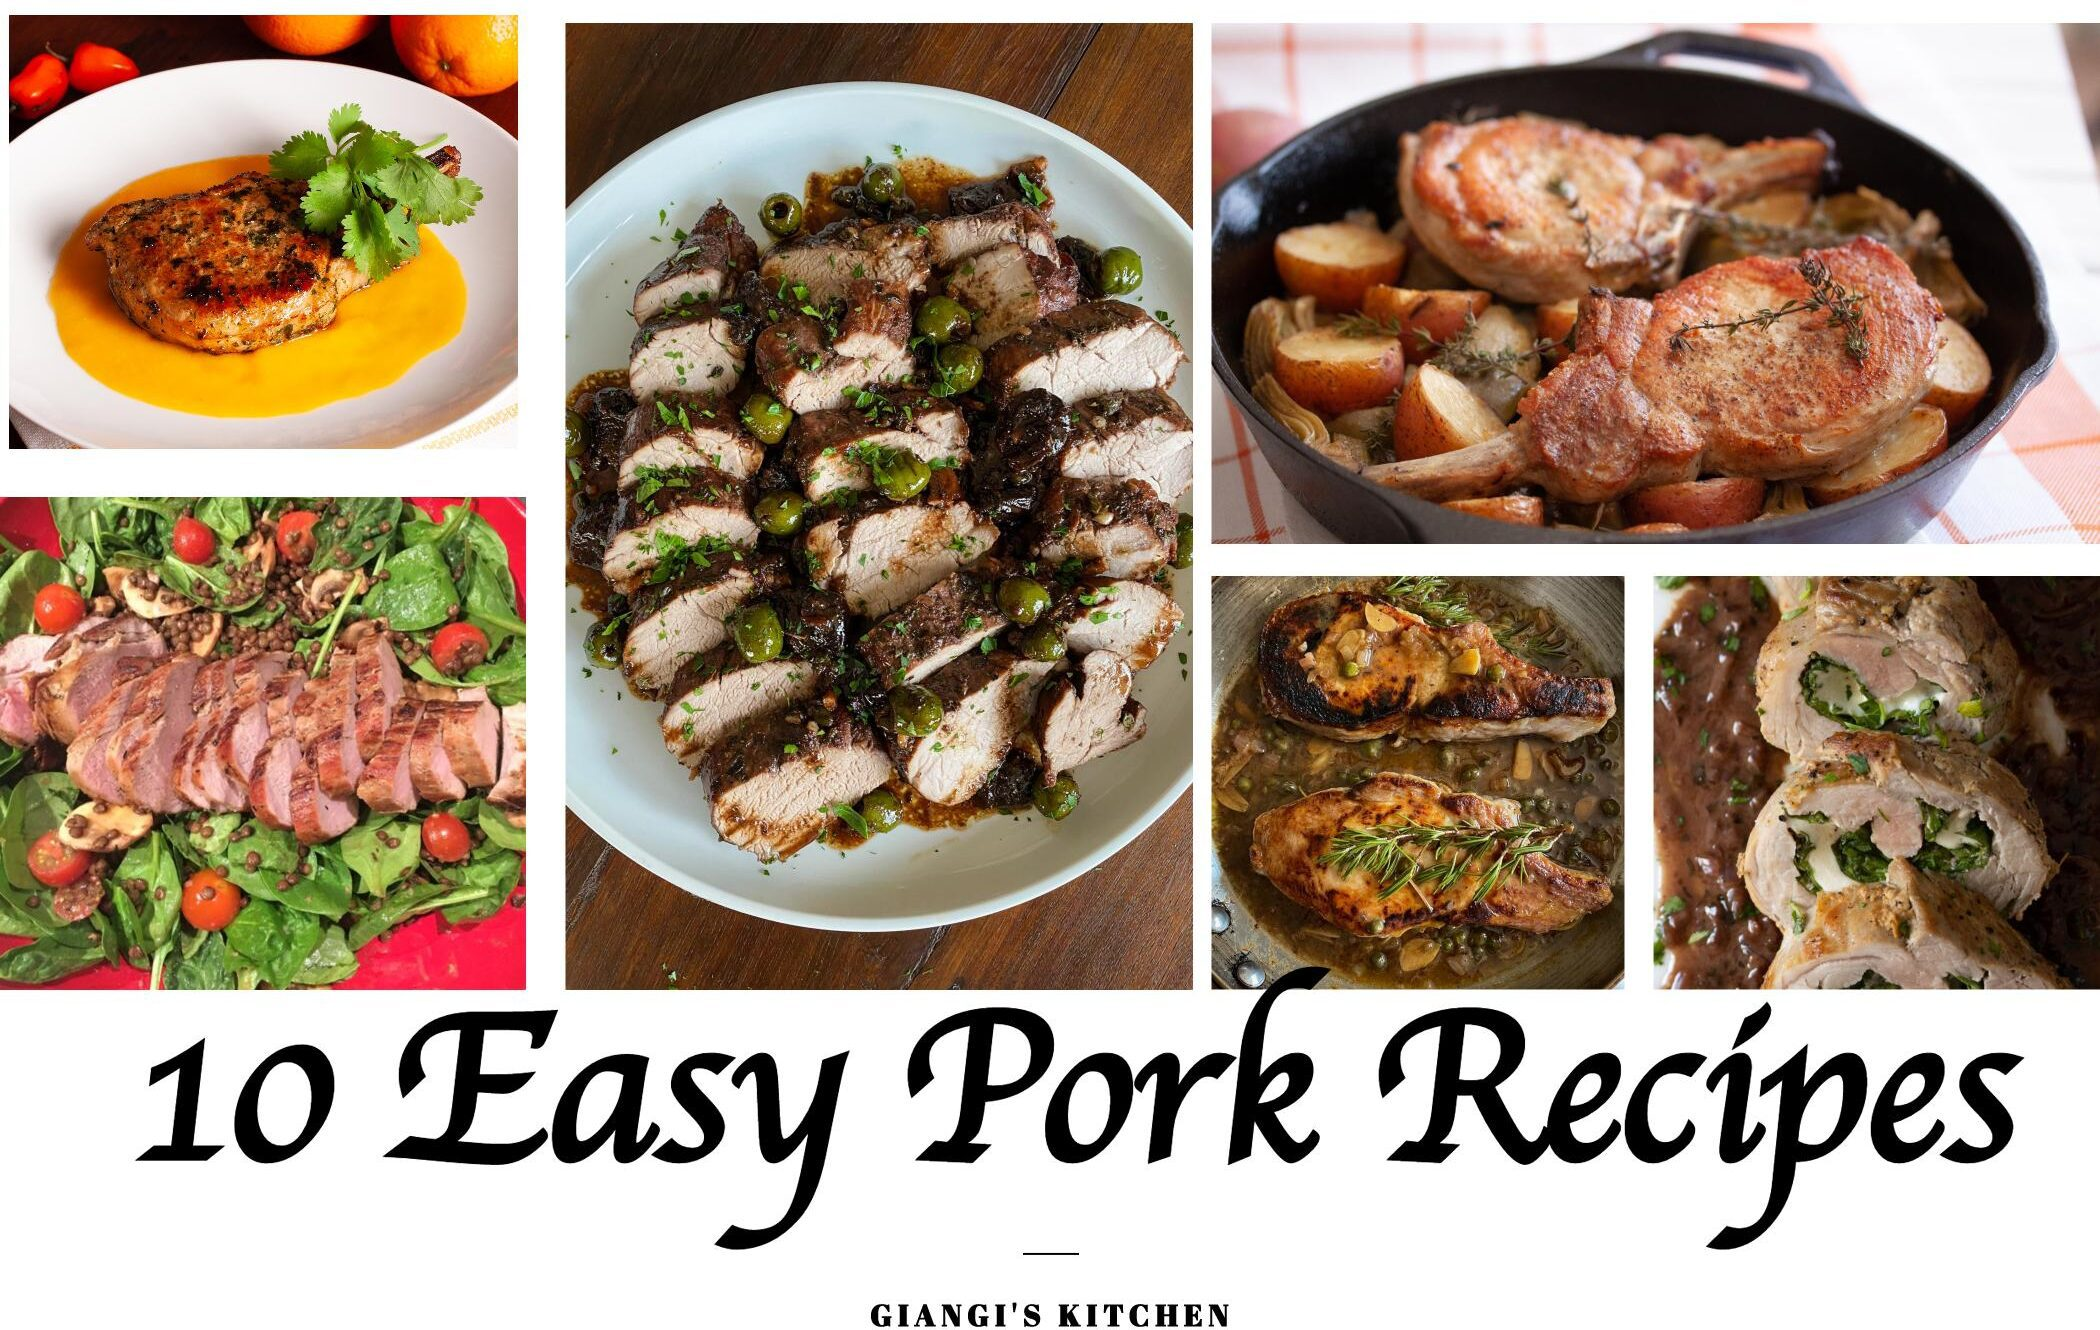 10 easy pork recipes